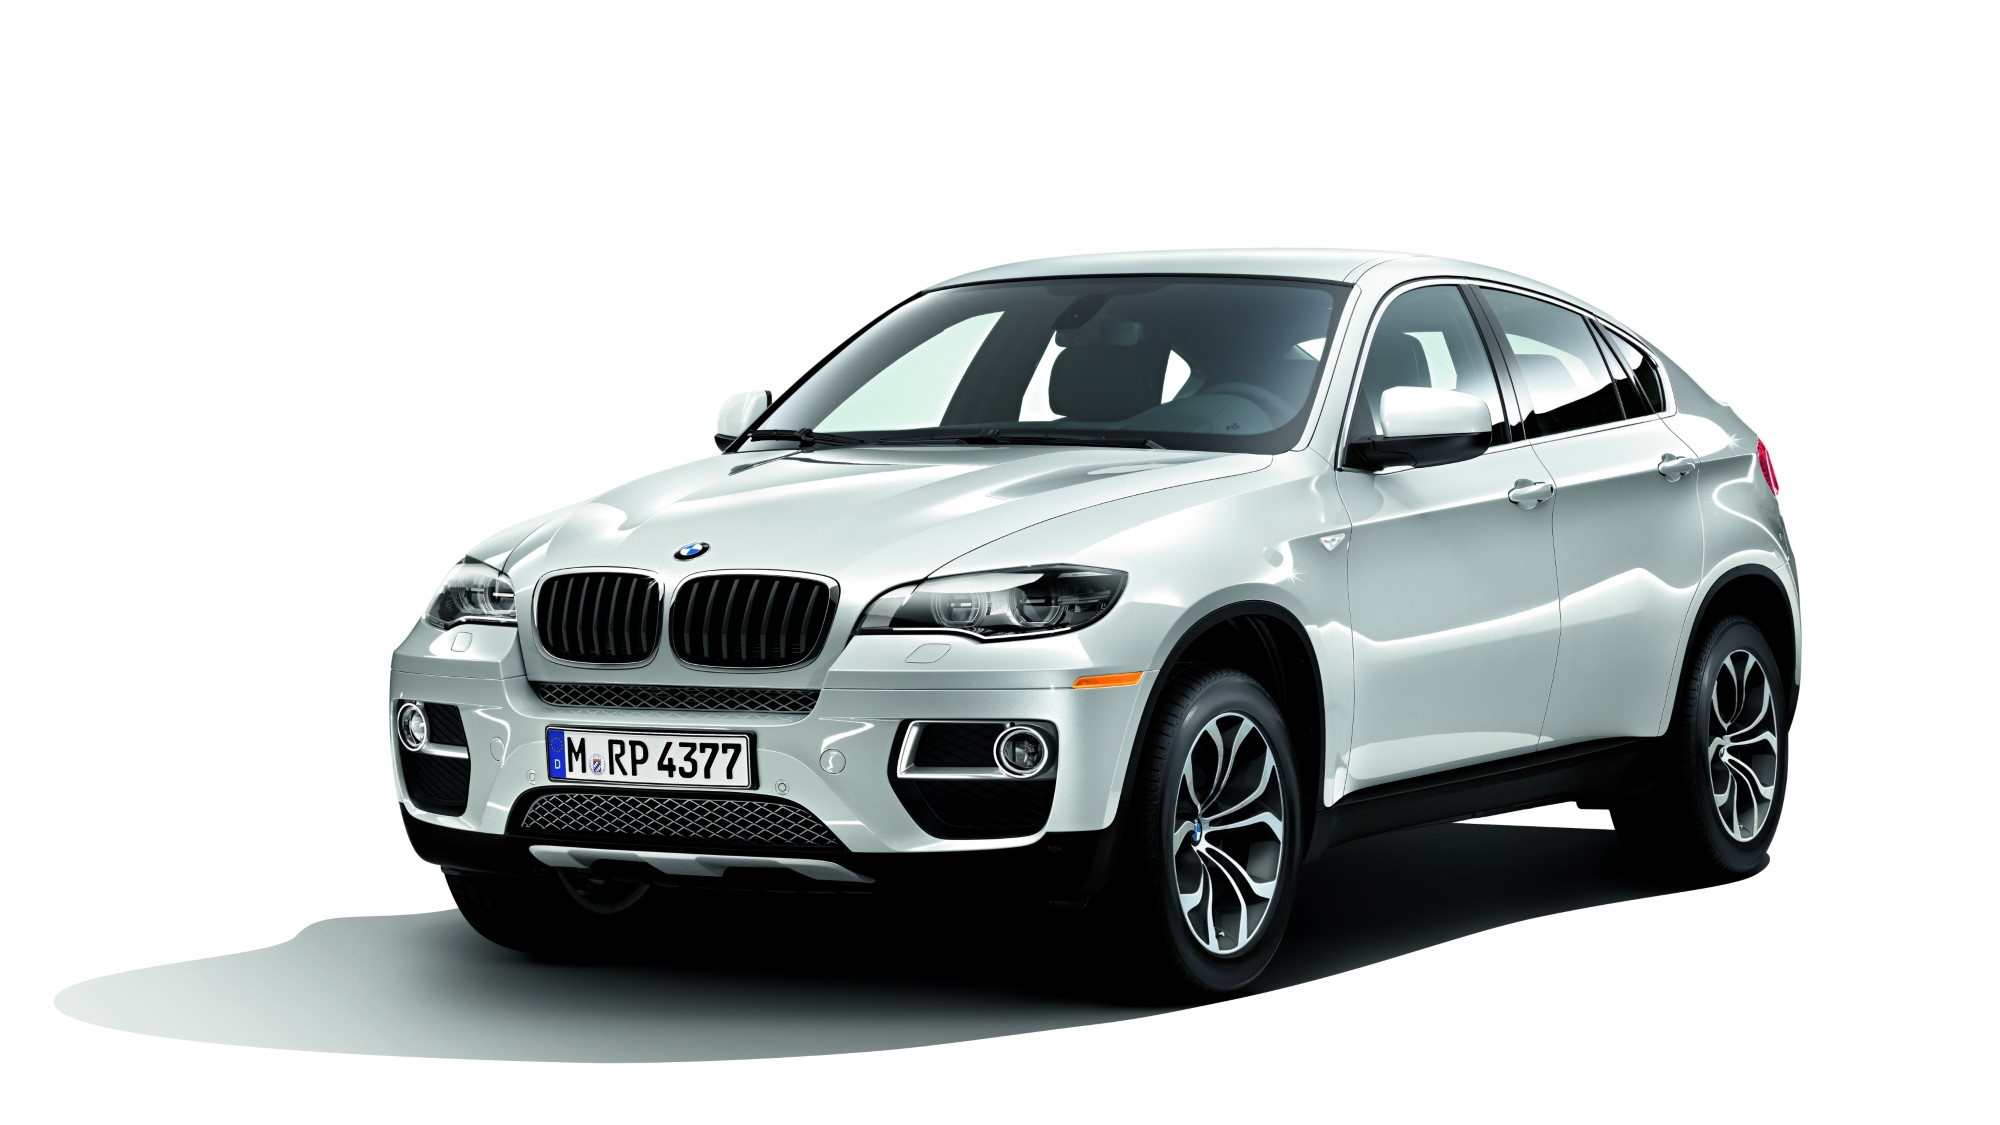 2013 BMW Individual X6 Performance Edition